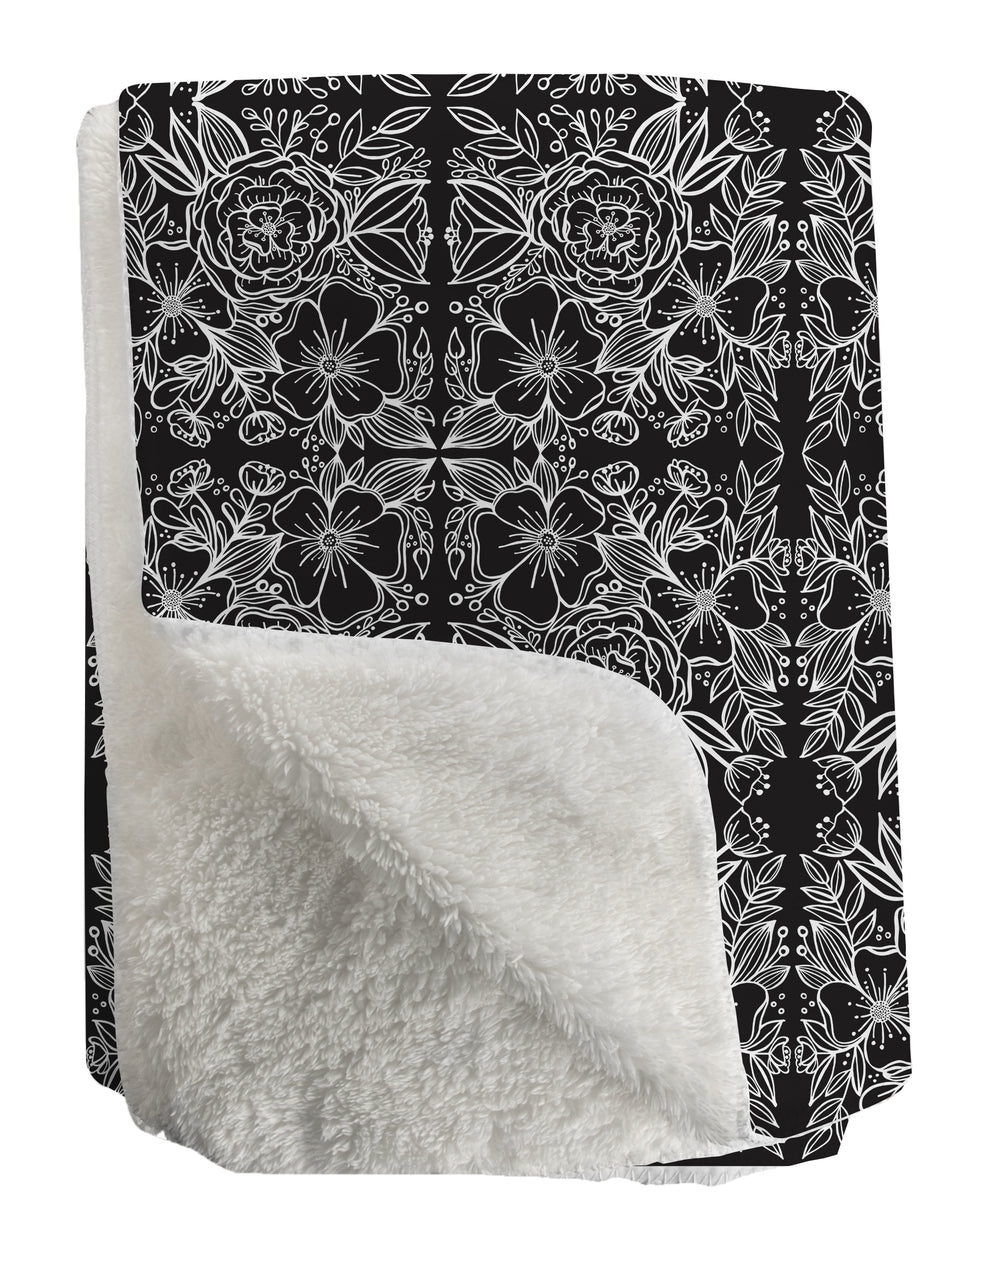 Black Floral Tiles Sherpa Fleece Throw - kathryncole